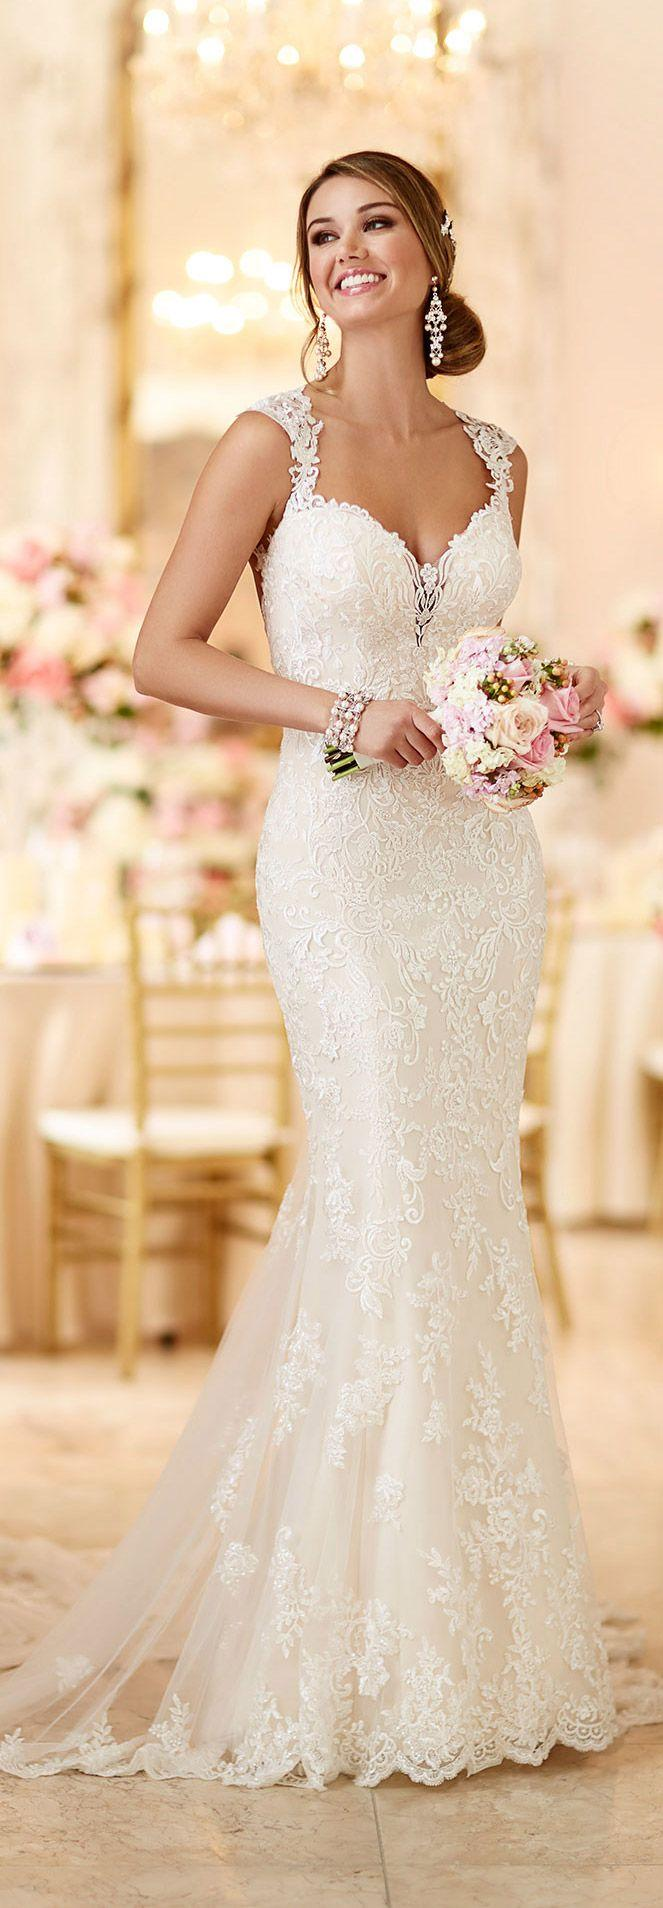 Mariage - Stella York New Wedding Dress Collection 2016